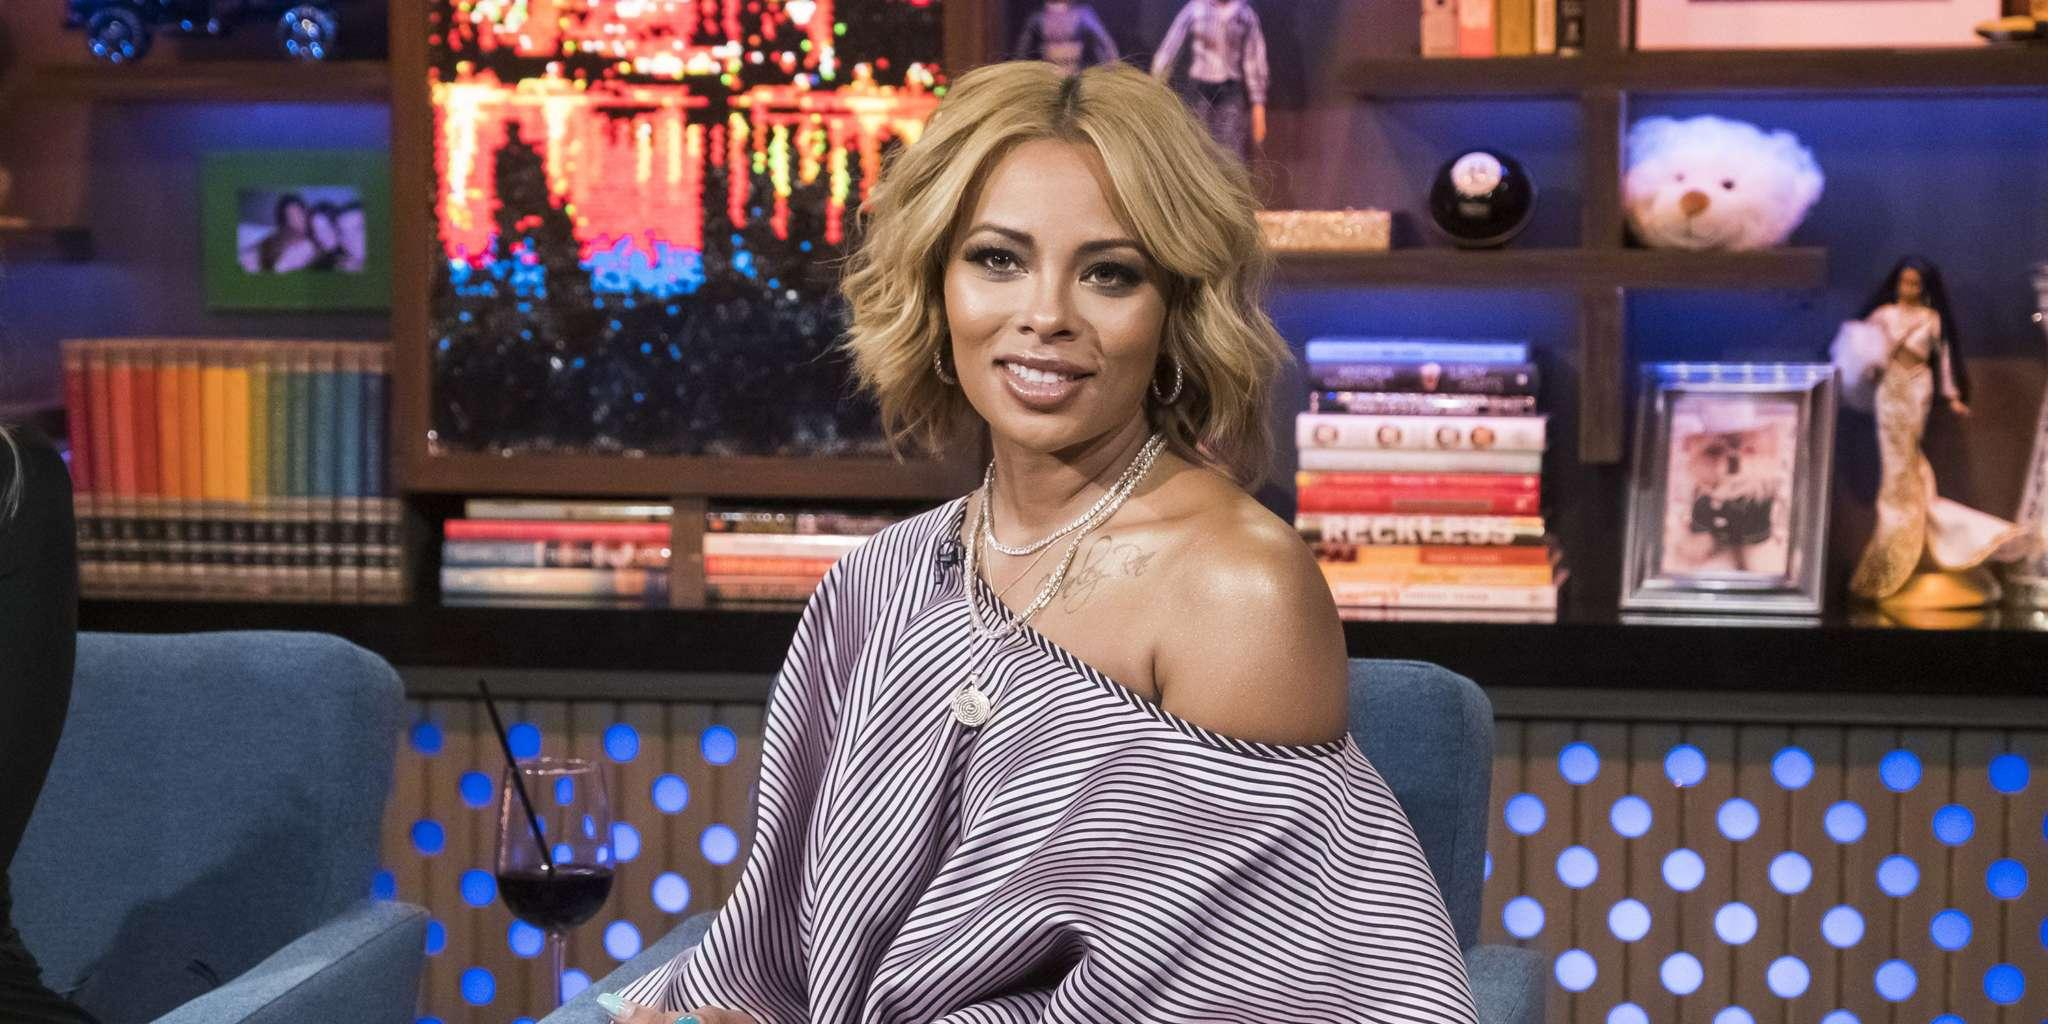 Eva Marcille Honors Mothers Everywhere Tomorrow - Read Her Message